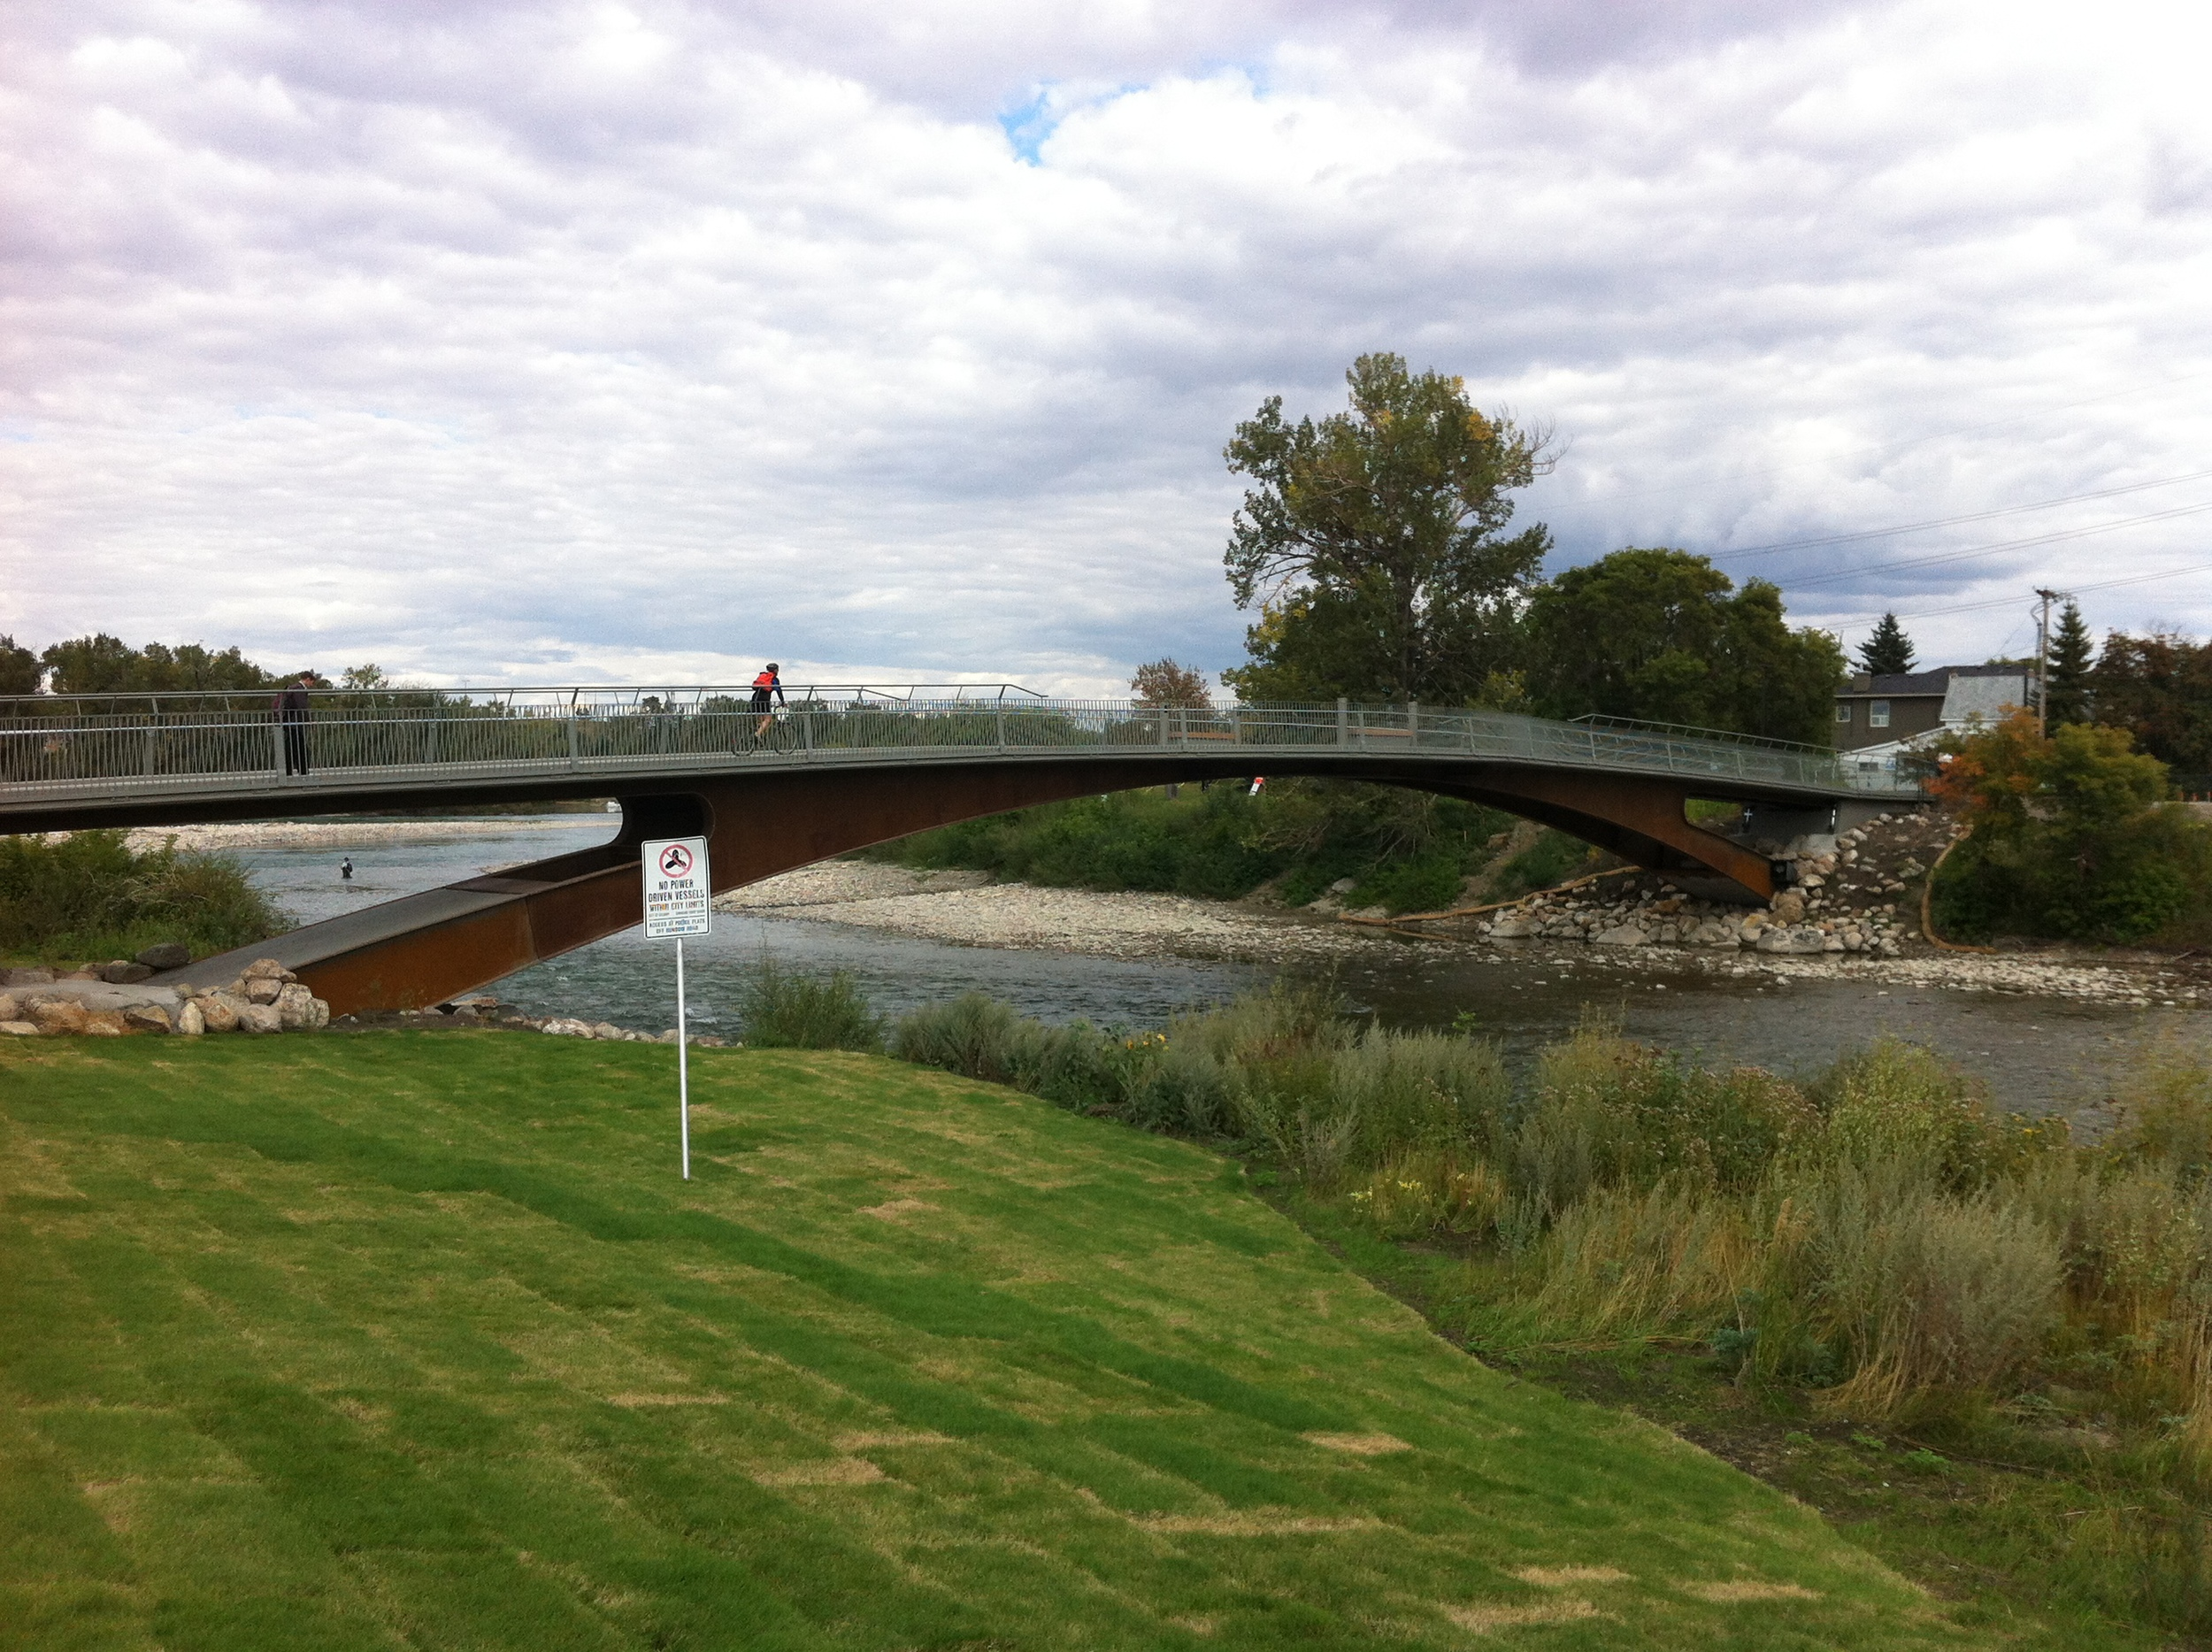 Elbow River Traverse aka bridge for cyclists and pedestrians.